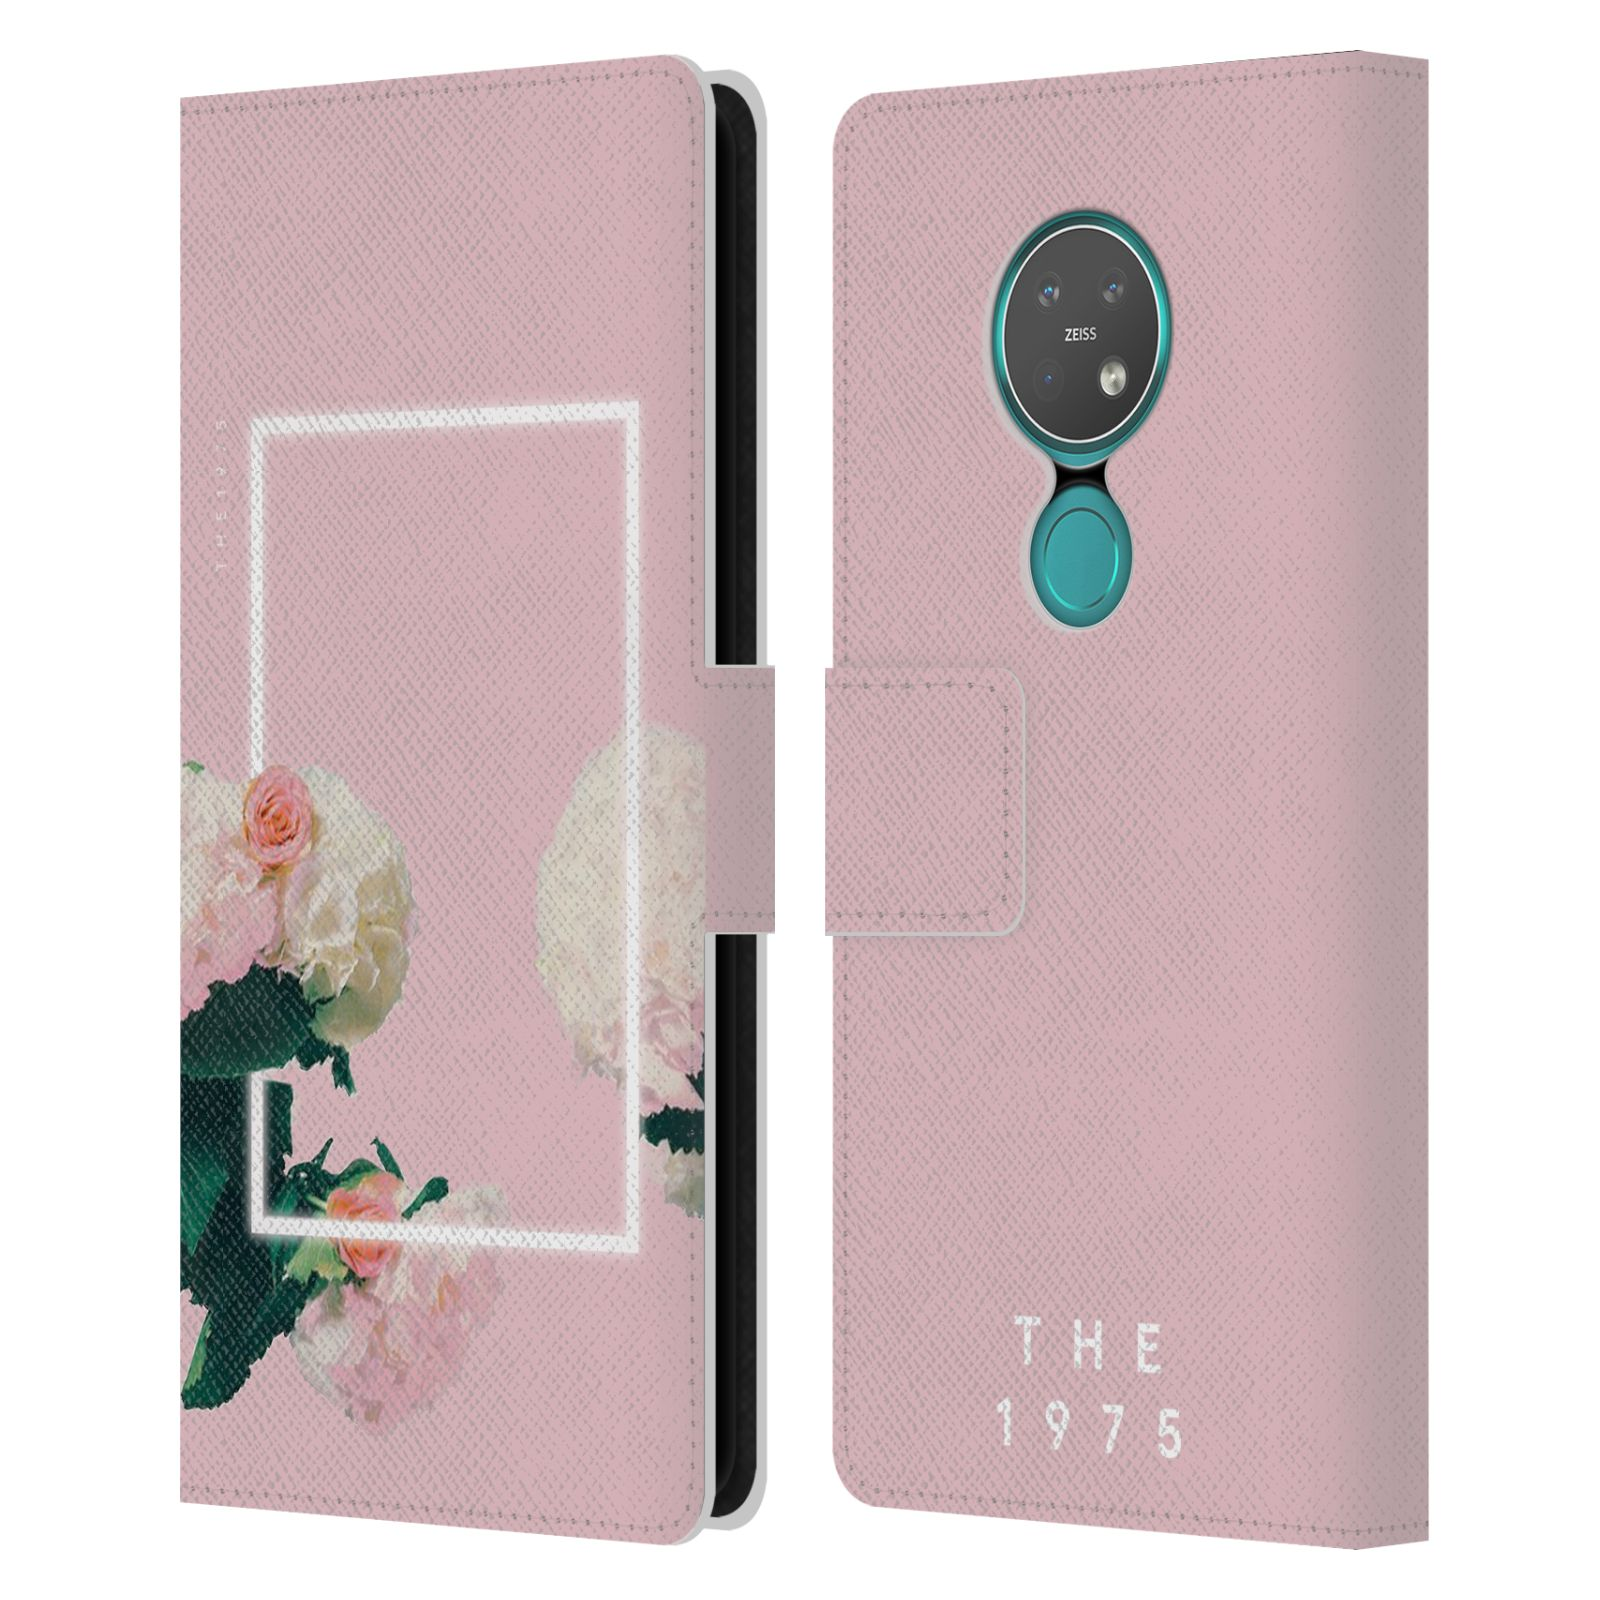 Official The 1975 Key Art Roses Pink Leather Book Wallet Case For Nokia 7.2